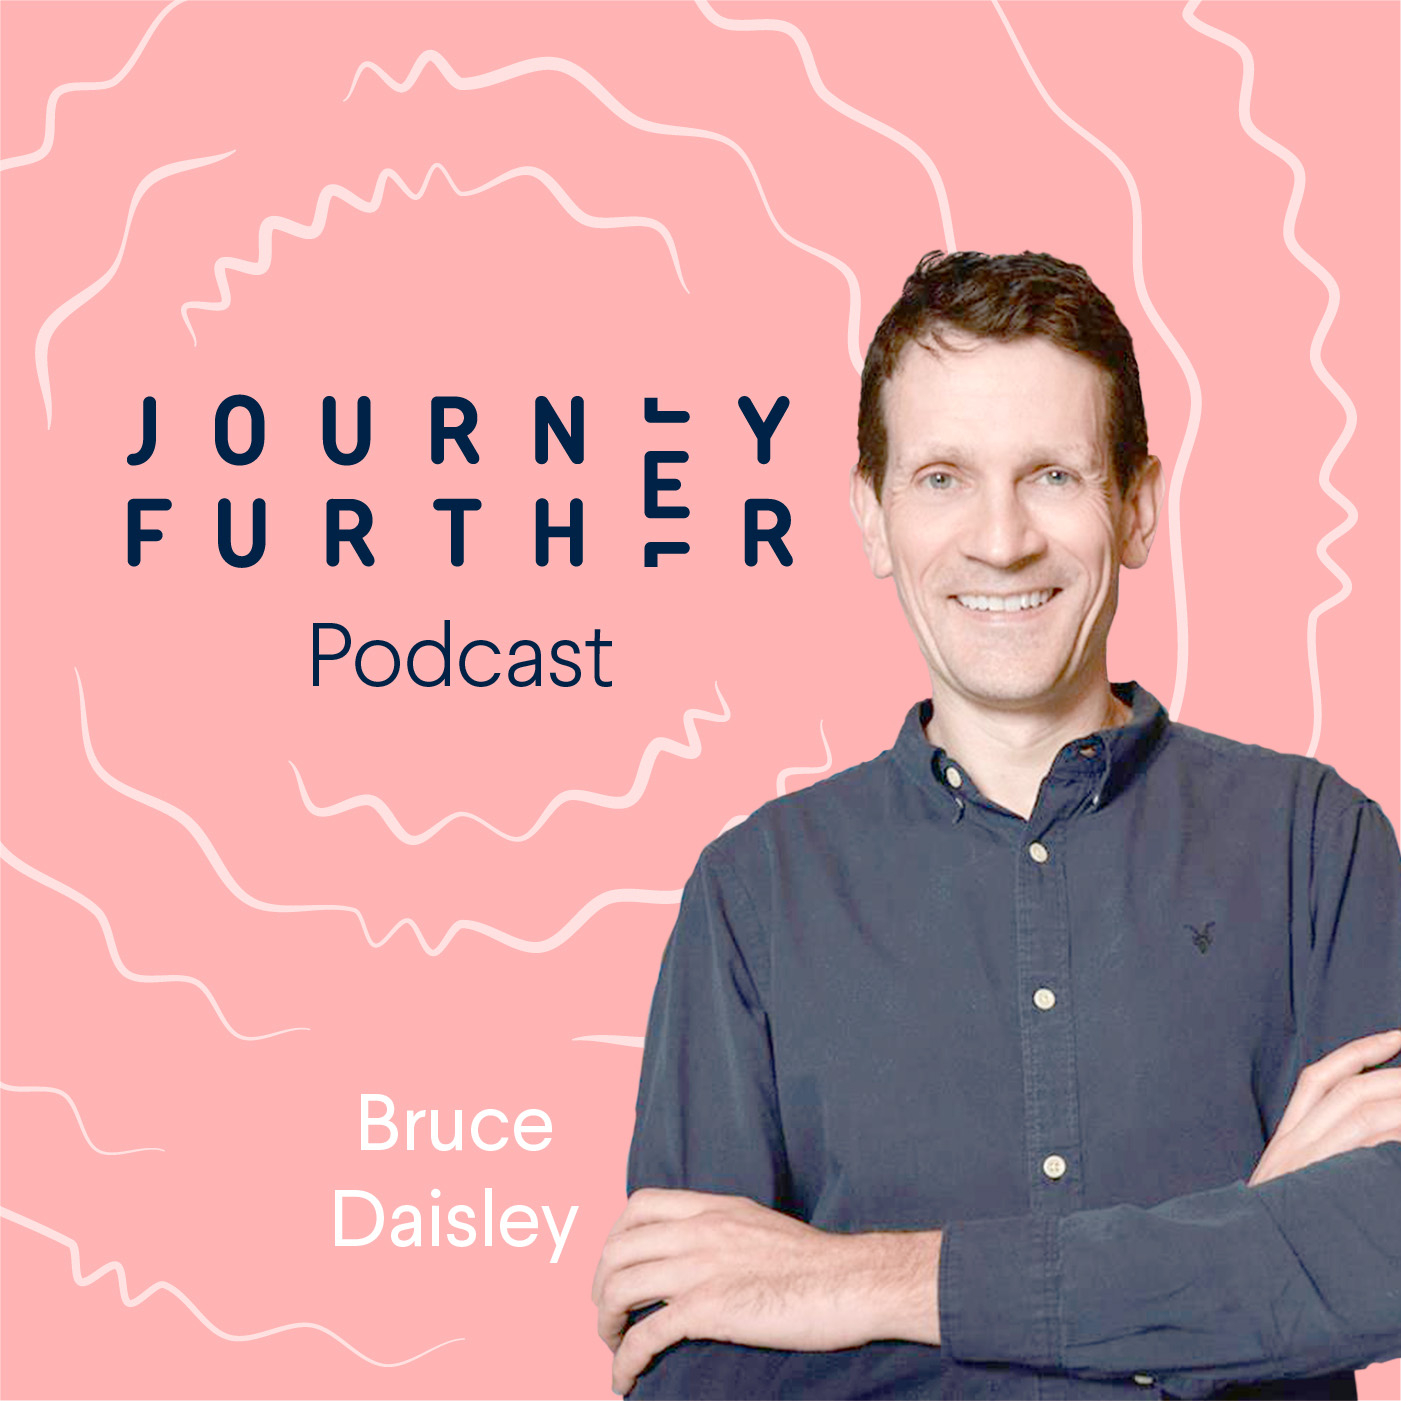 The Joy of Work with Bruce Daisley (Eat Sleep Work Repeat, former VP EMEA Twitter)